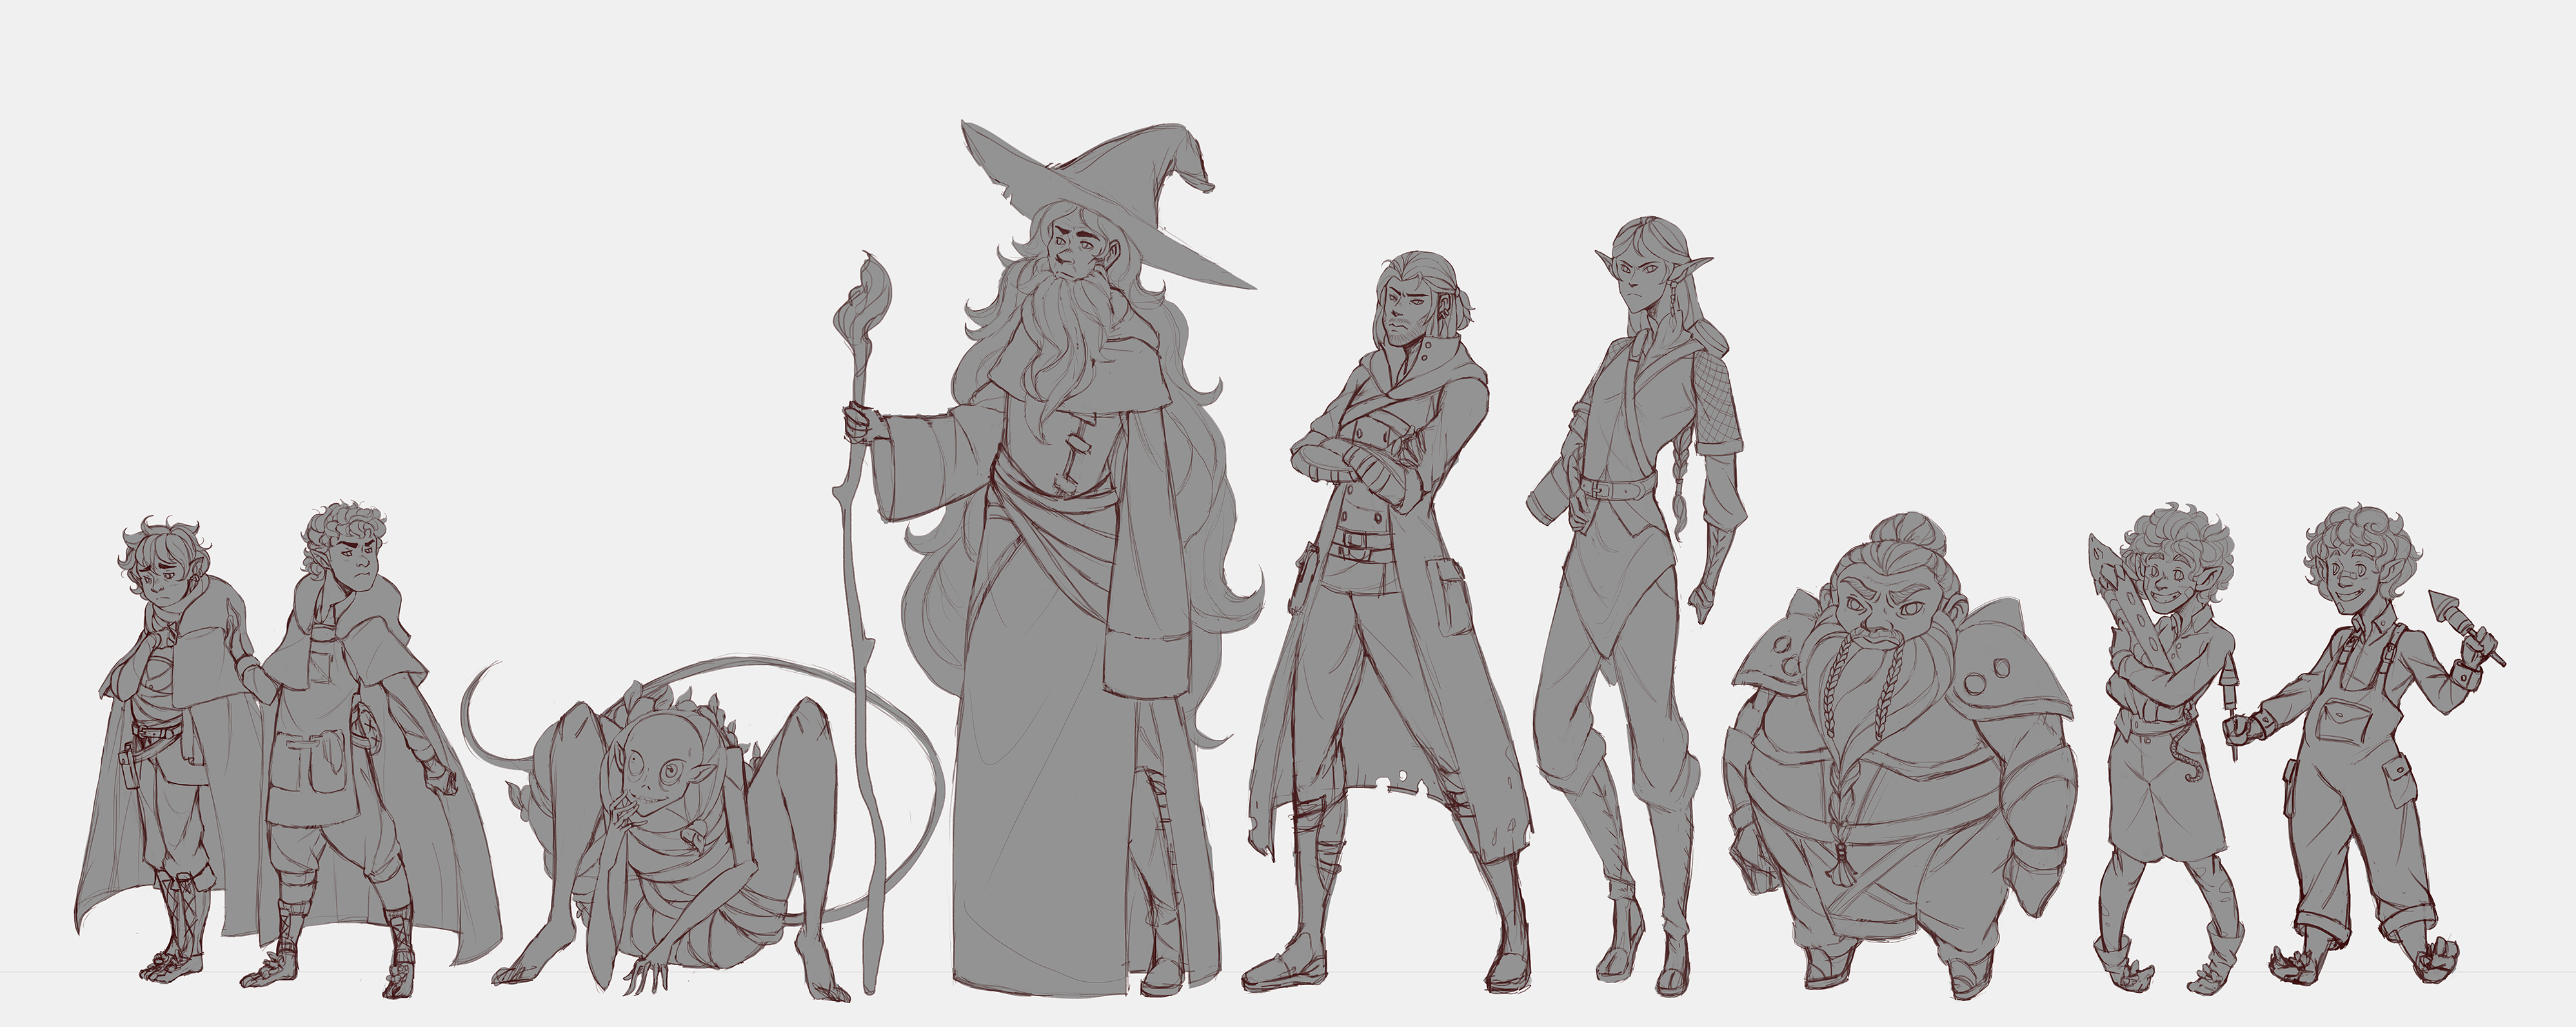 Character Design Practice : Lord of the rings character design practice by